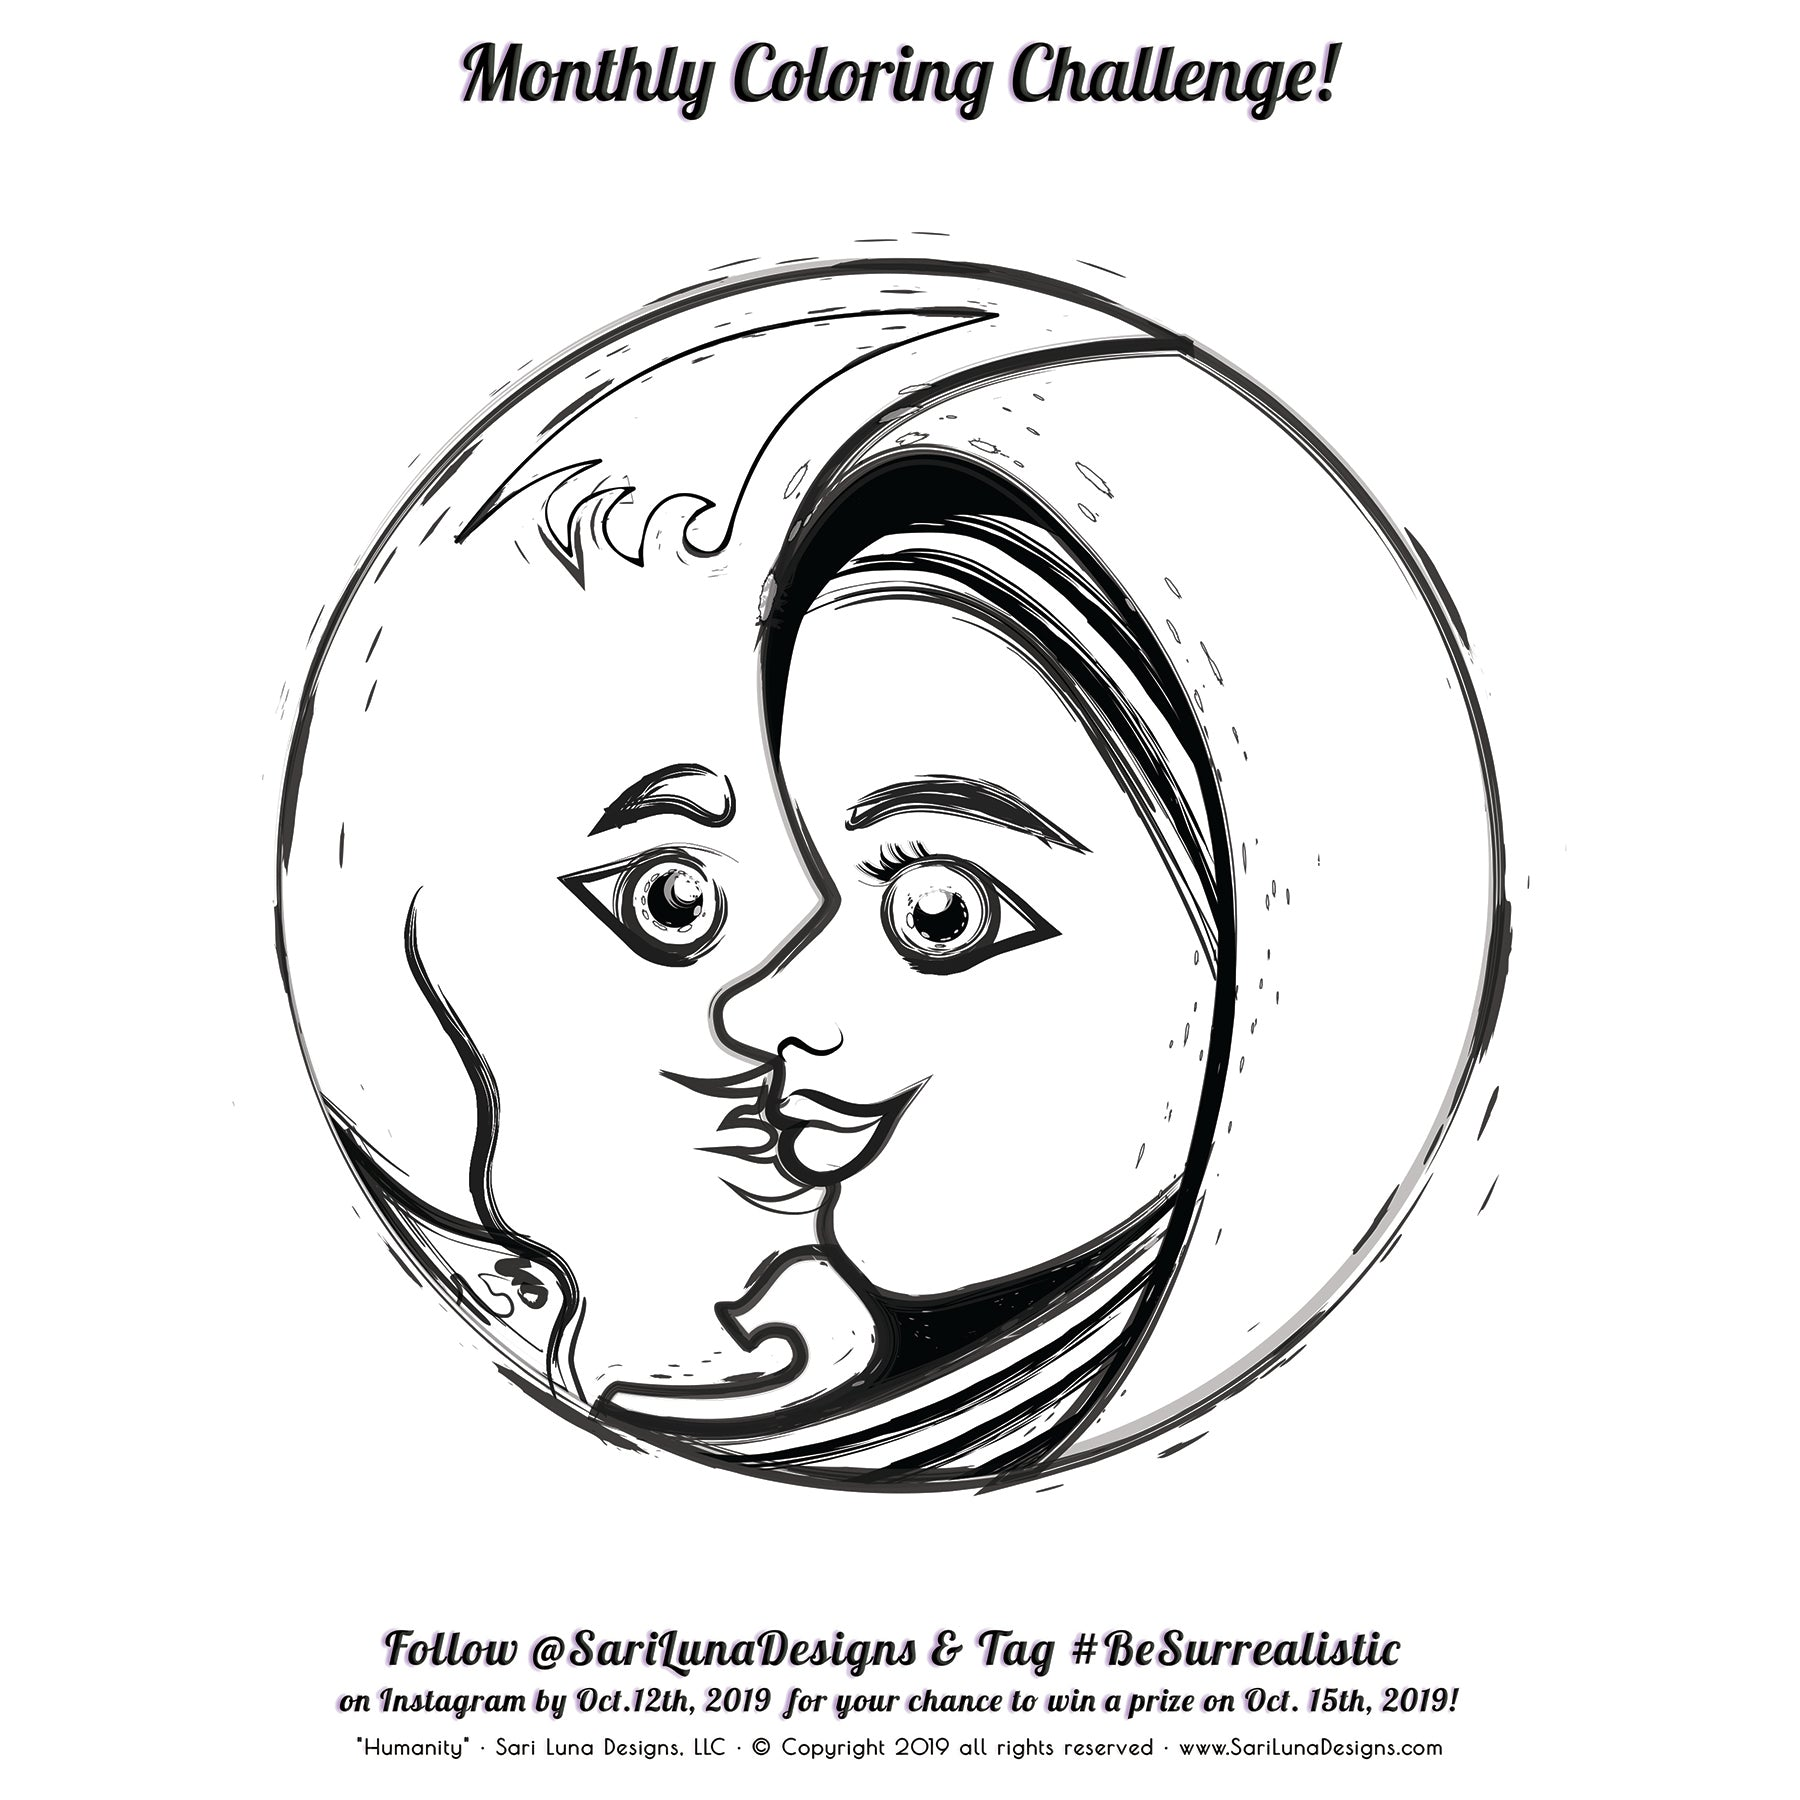 Monthly Coloring Challenge - Humanity